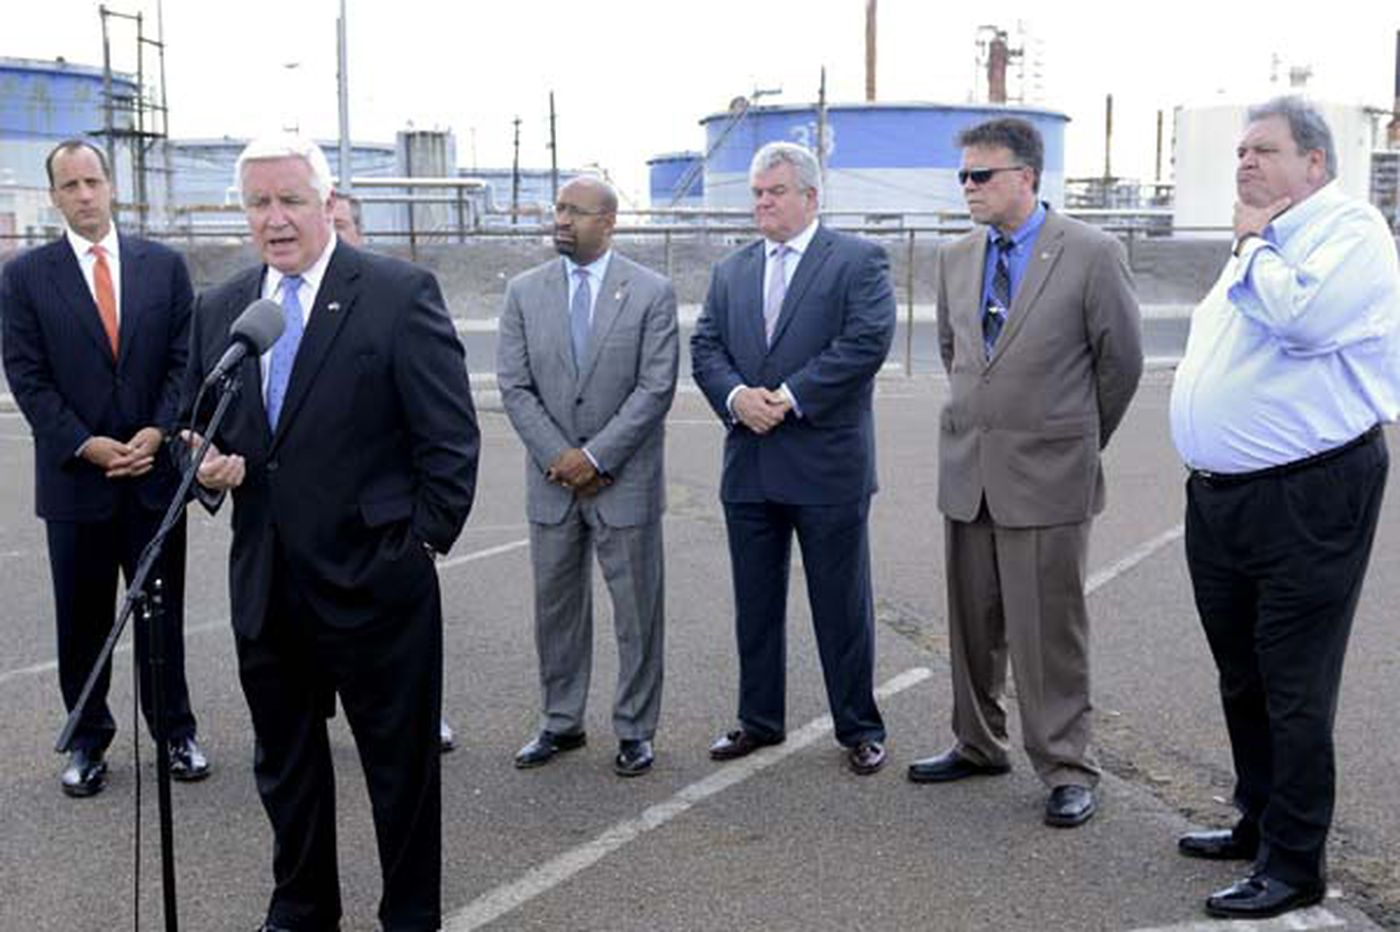 With South Philly refinery closing, questions about taxpayer subsidies that kept it going